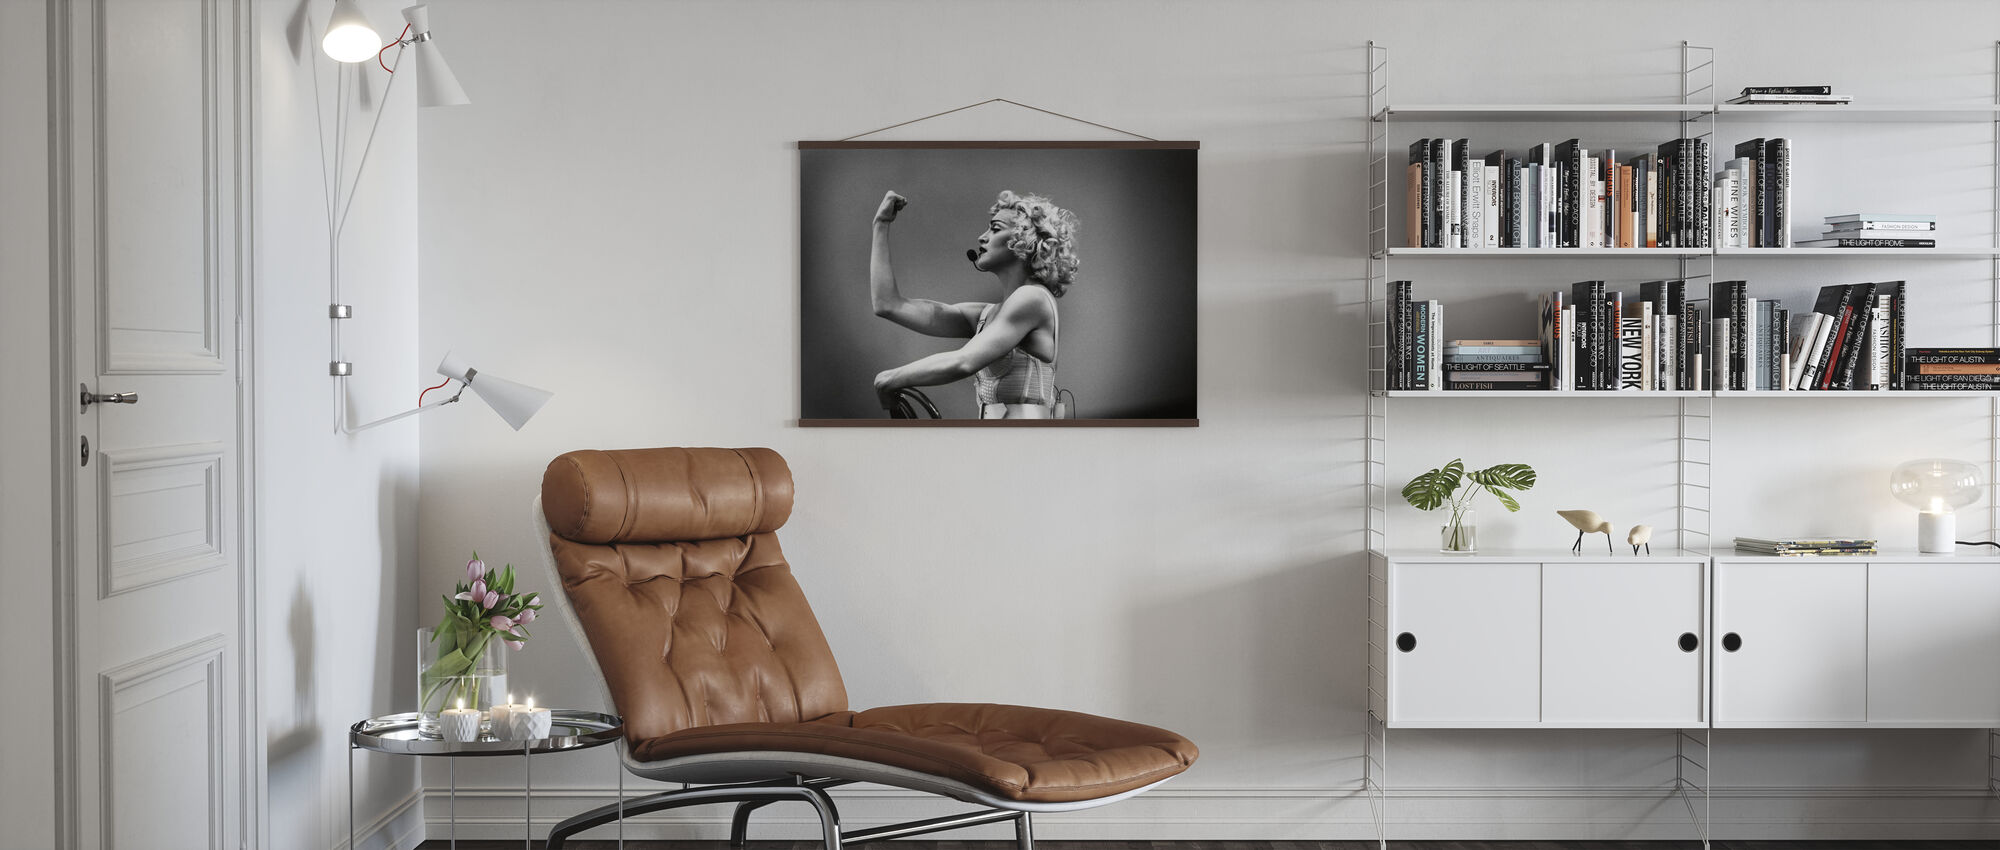 Express Yourself - Madonna - Poster - Living Room